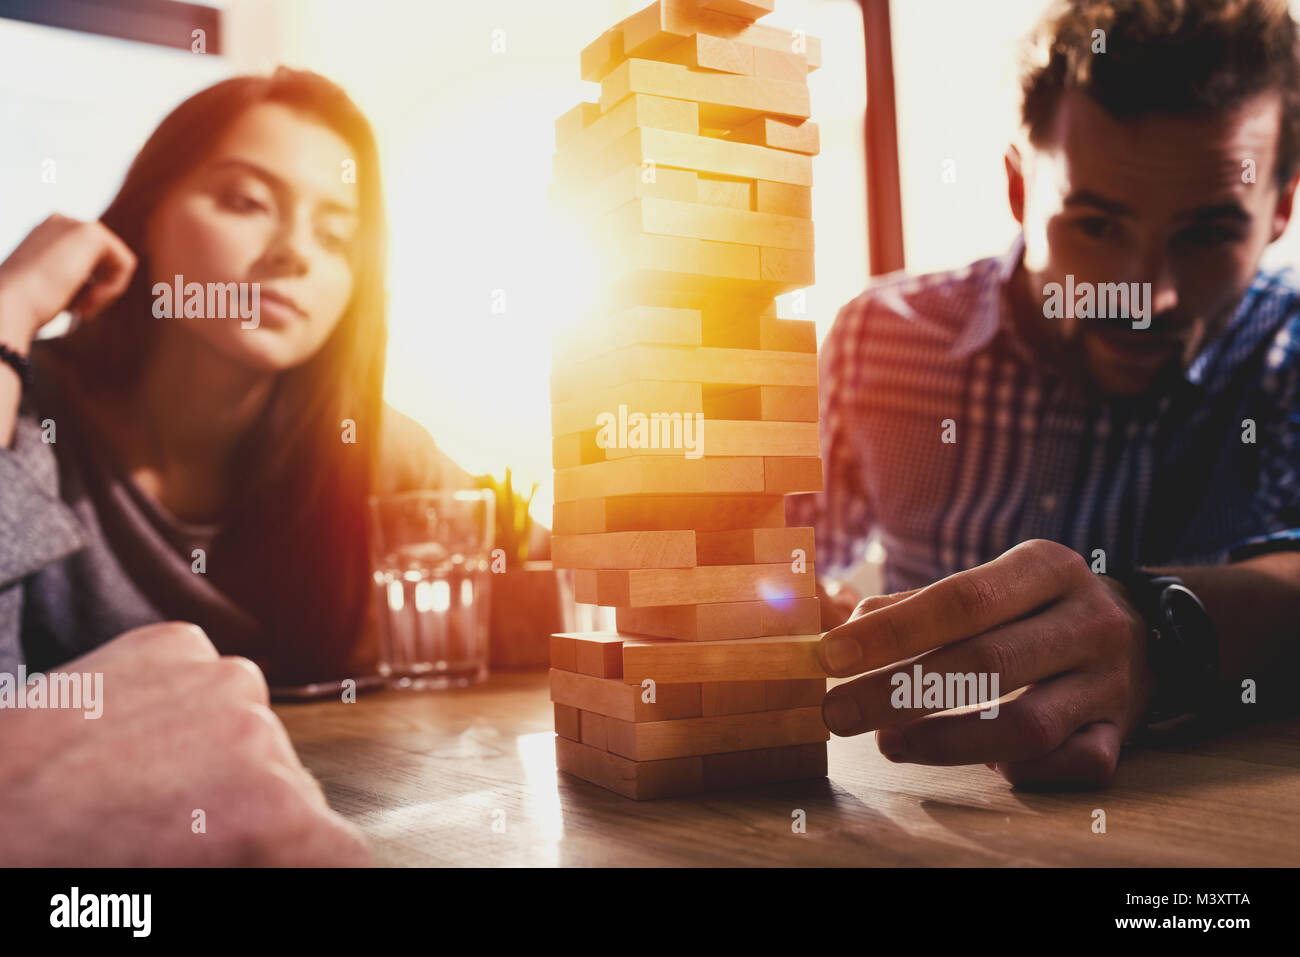 Team of business people build a wooden construction. concept of teamwork ,partnership and company startup - Stock Image